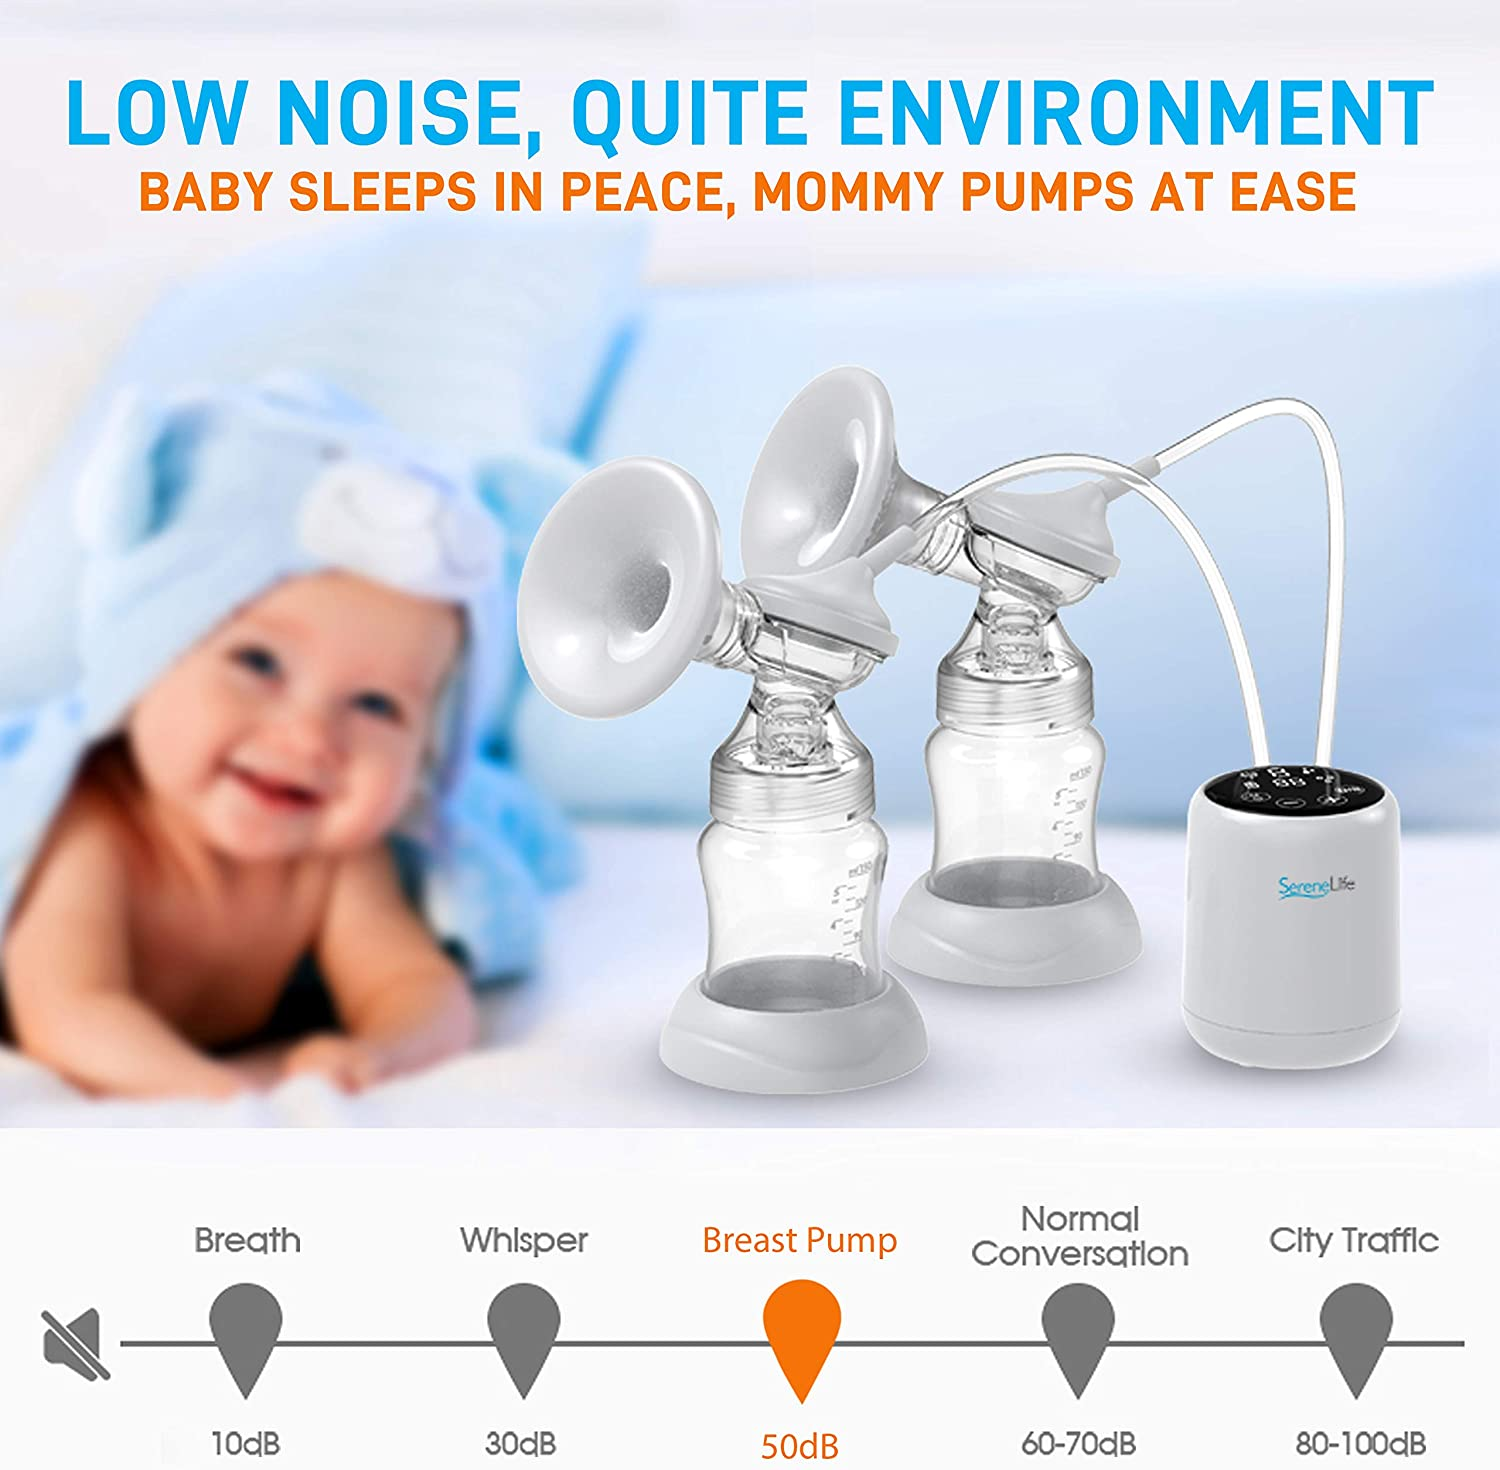 Silent Pain-Free Automatic Portable Breast Pump Machine w// 2-Phase Expression Technology LED Display Portable Double Electric Breast Pump BPA Free SereneLife SIBPX3 Anti-Backflow Design